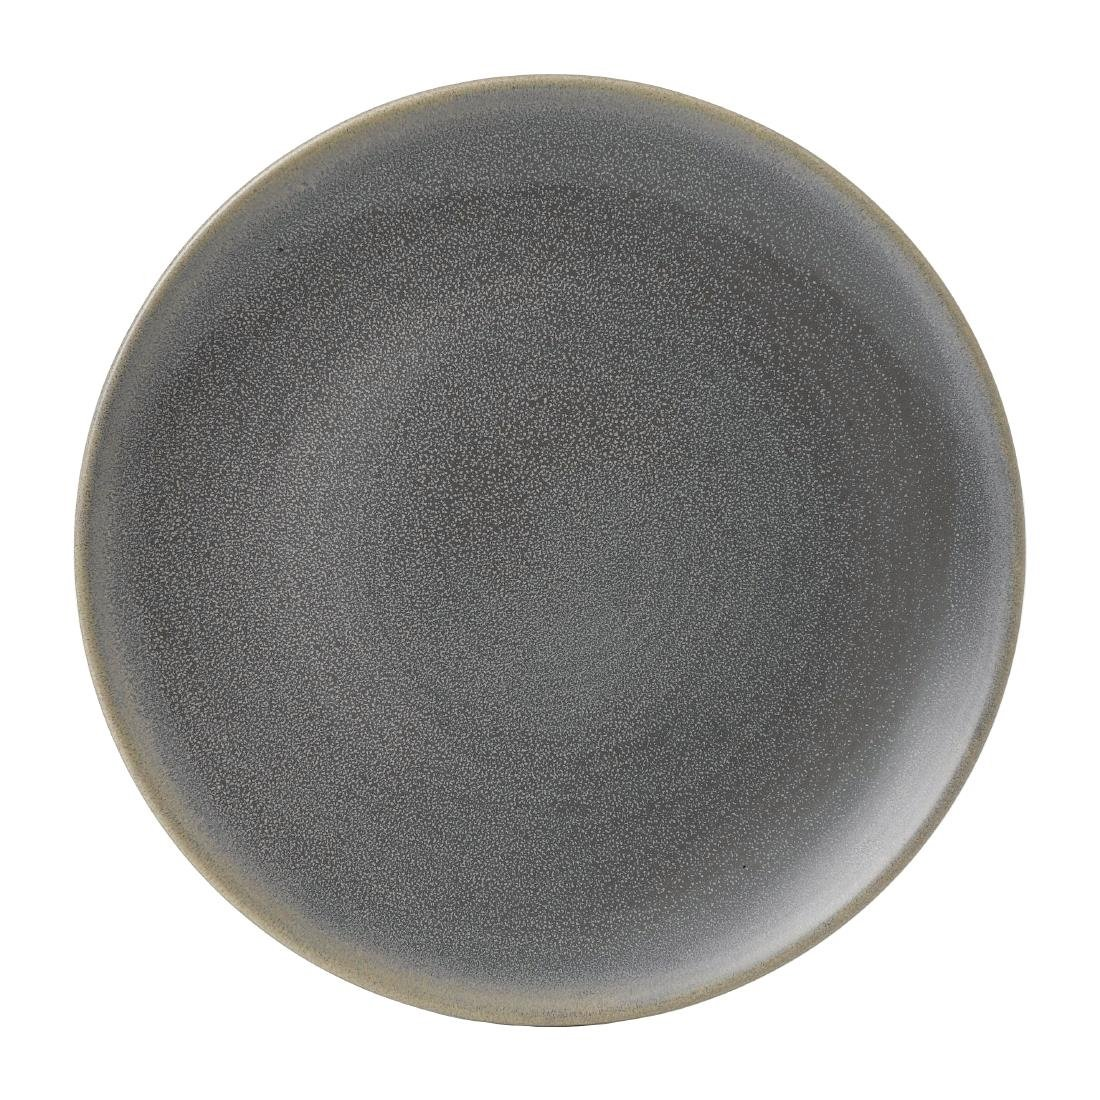 Image of Dudson Evo Granite Coupe Plate 295mm (Pack of 6) Pack of 6